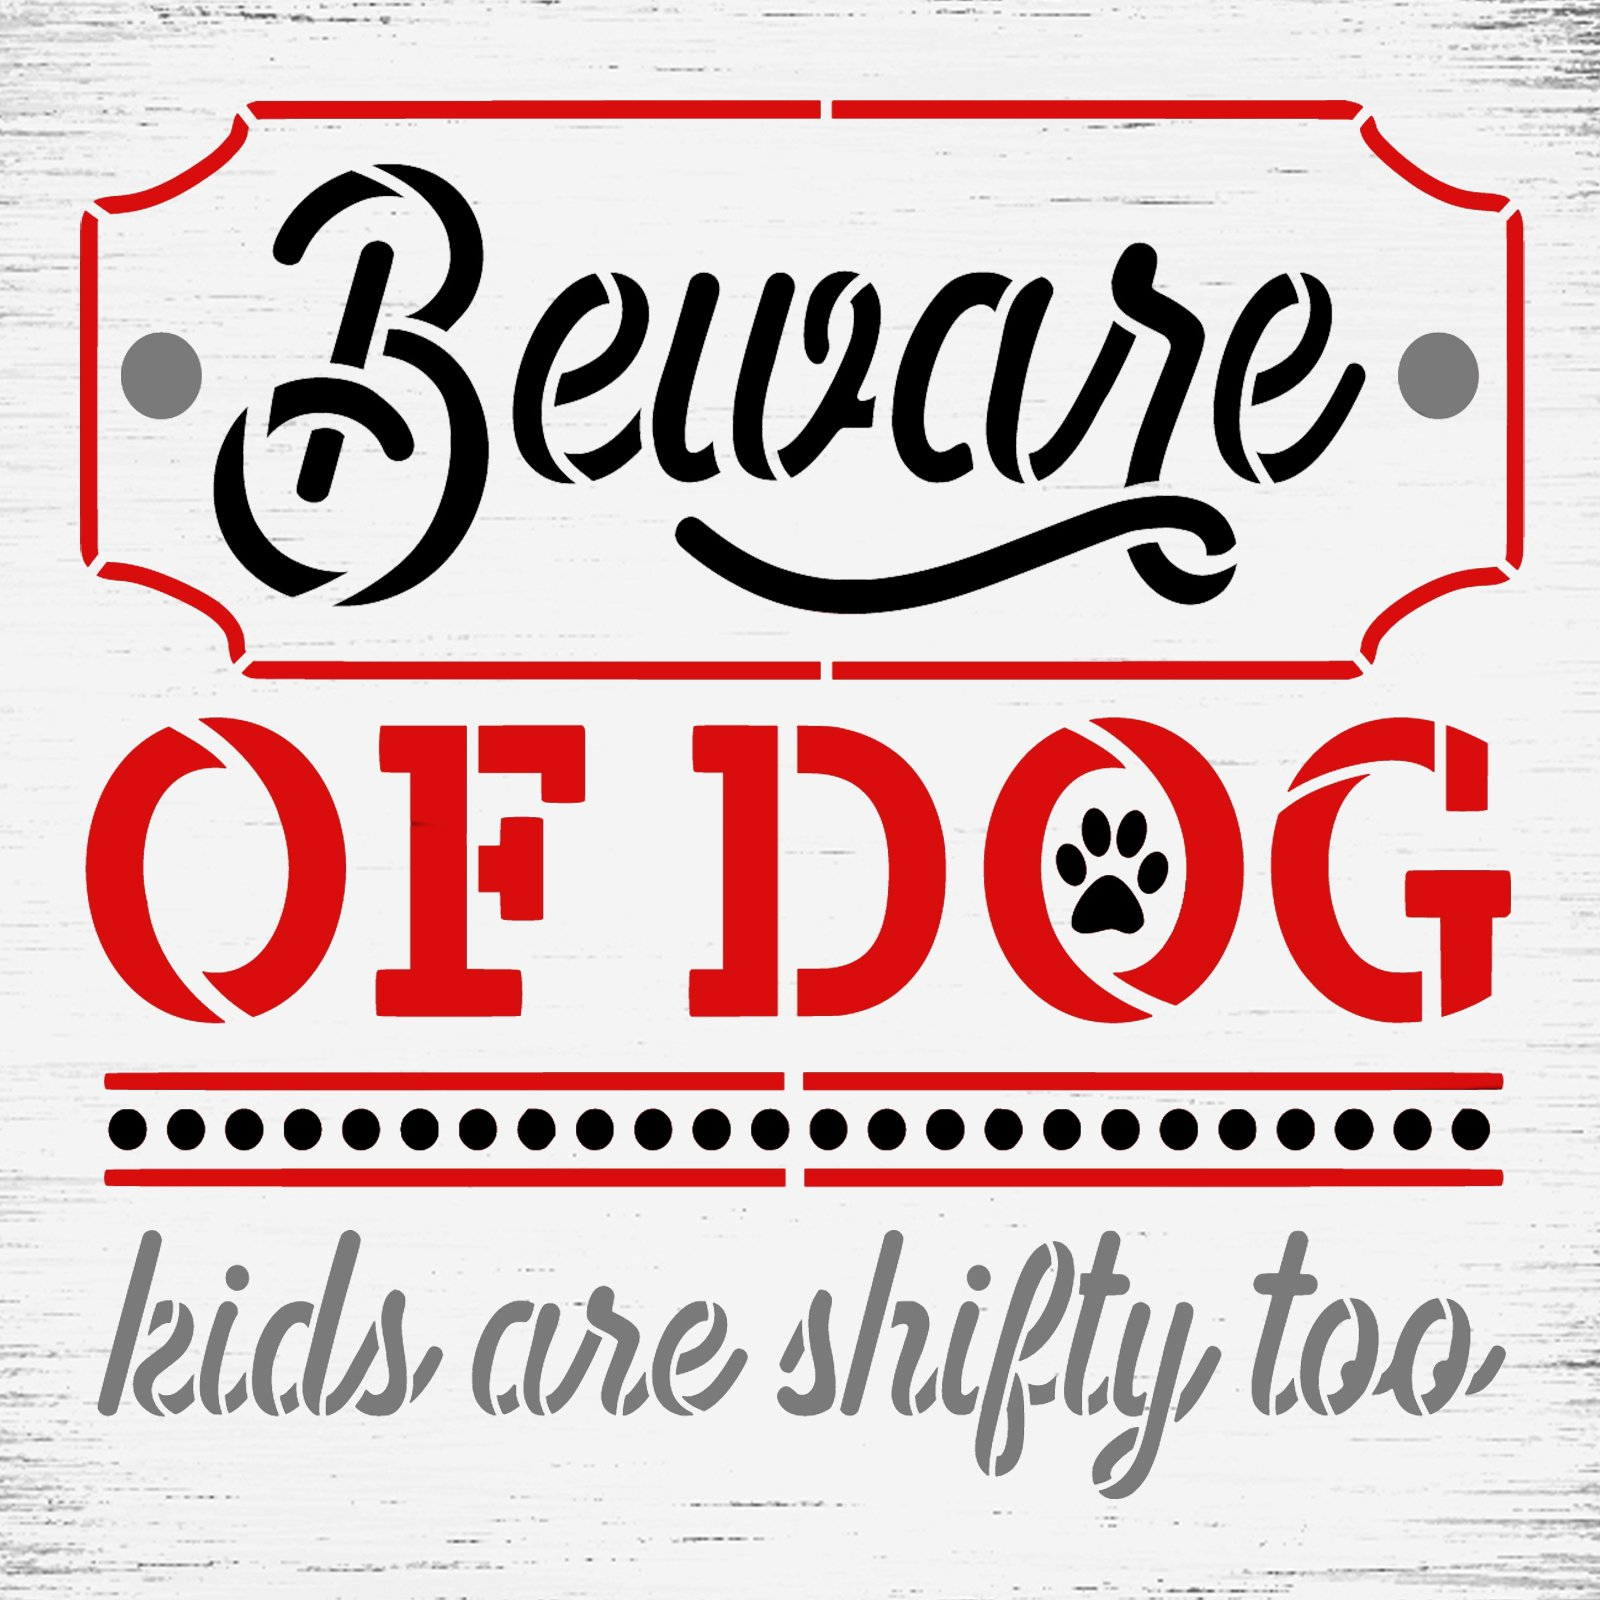 Beware of Dog - Kids Shifty Too Stencil by StudioR12 | Craft DIY Pet Pawprint Home Decor | Paint Wood Sign | Reusable Mylar Template | Select Size